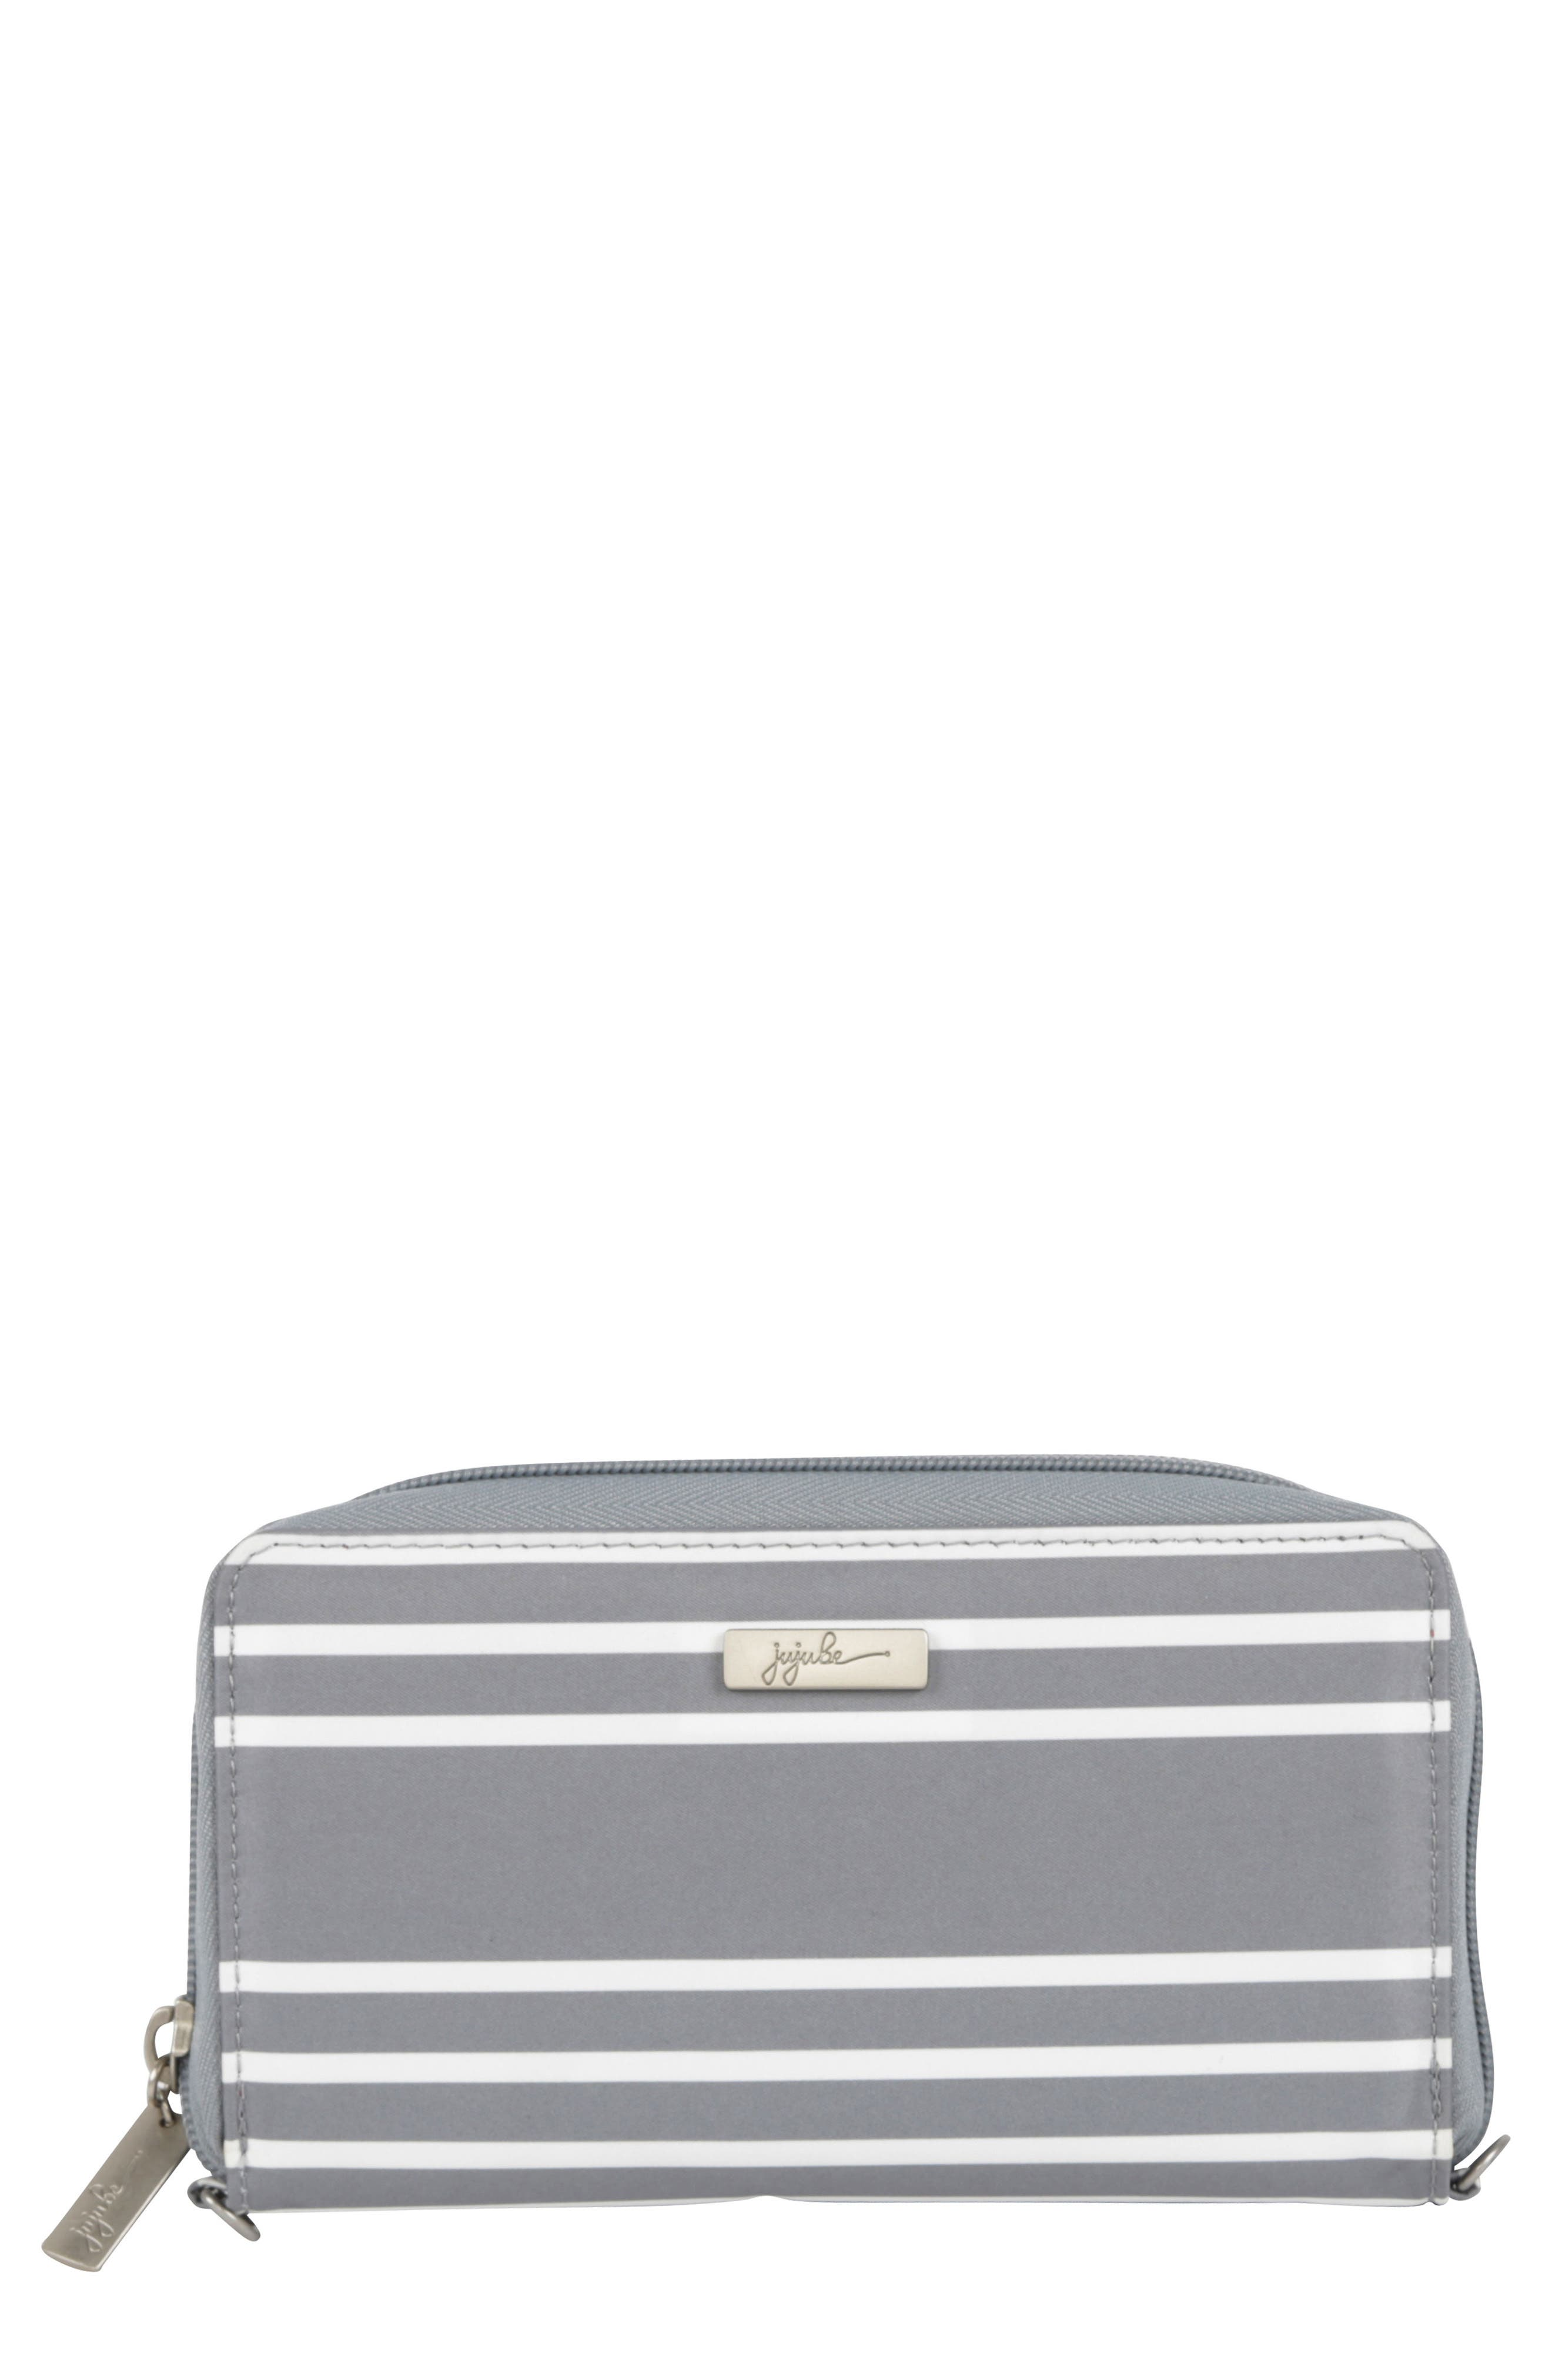 Be Spendy - Coastal Collection Clutch Wallet,                         Main,                         color, 042